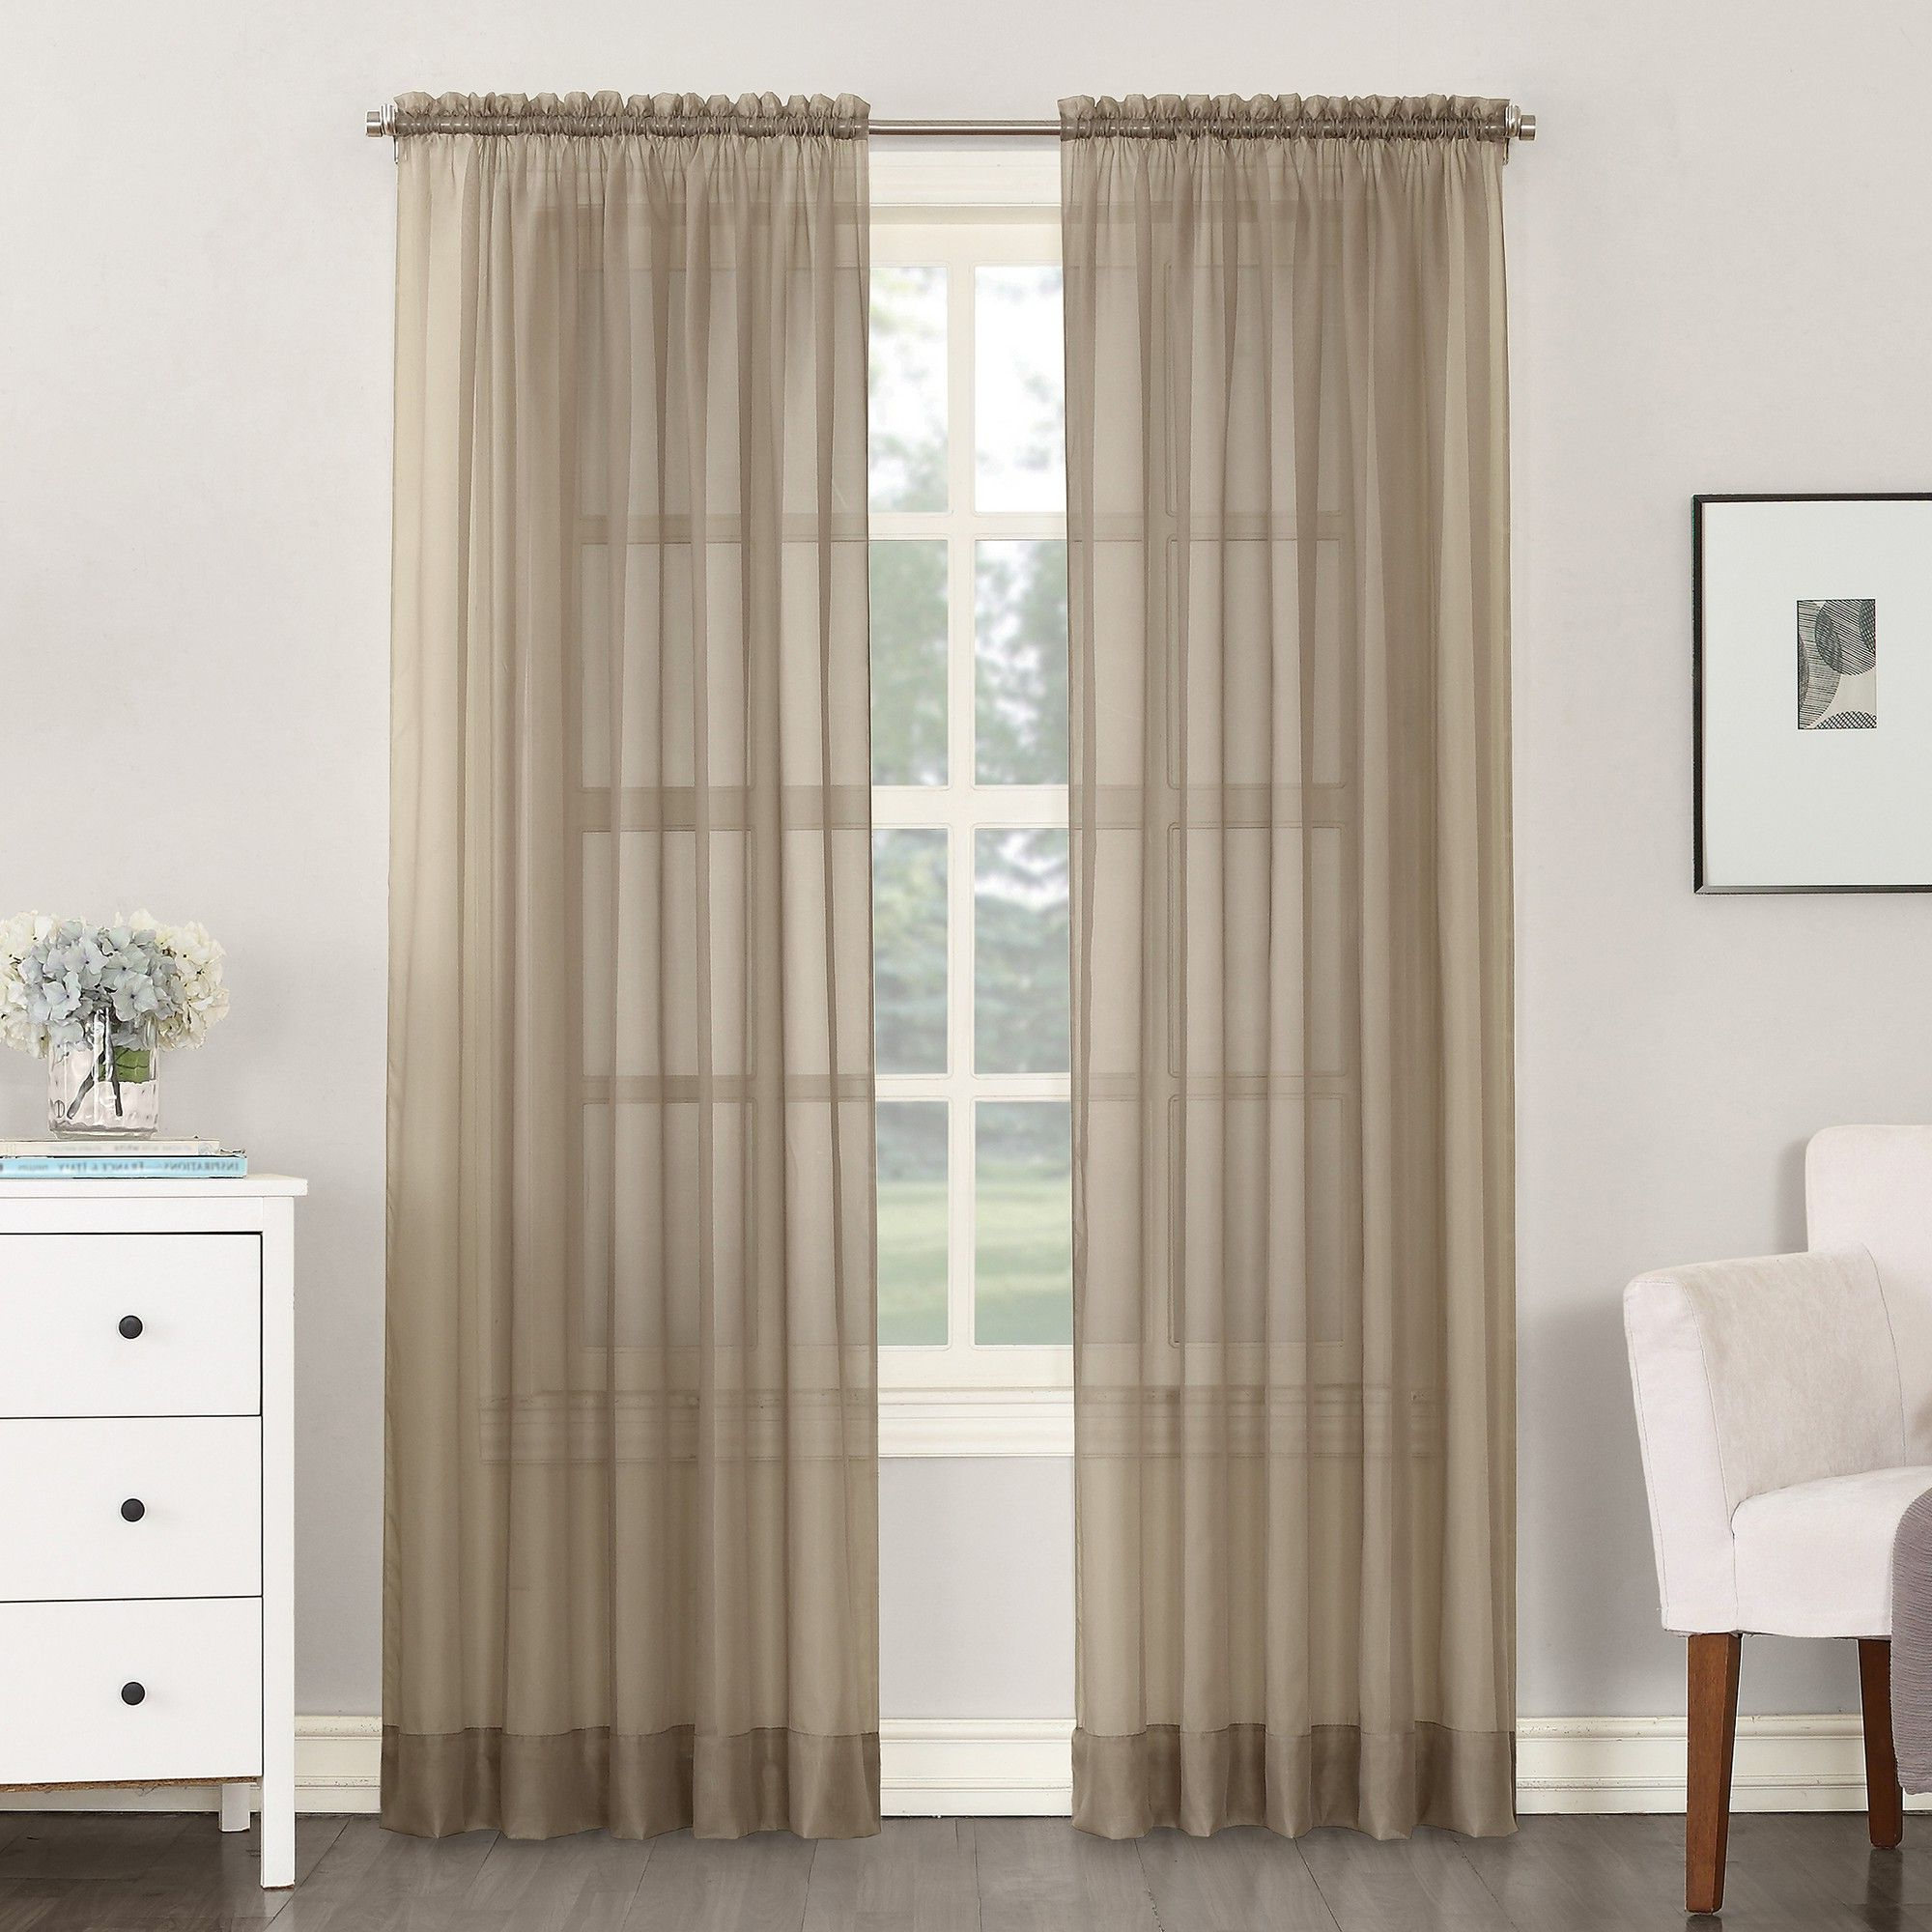 """2020 Emily Sheer Voile Solid Single Patio Door Curtain Panels Regarding Emily Sheer Voile Rod Pocket Curtain Panel Taupe 59""""x (View 6 of 20)"""